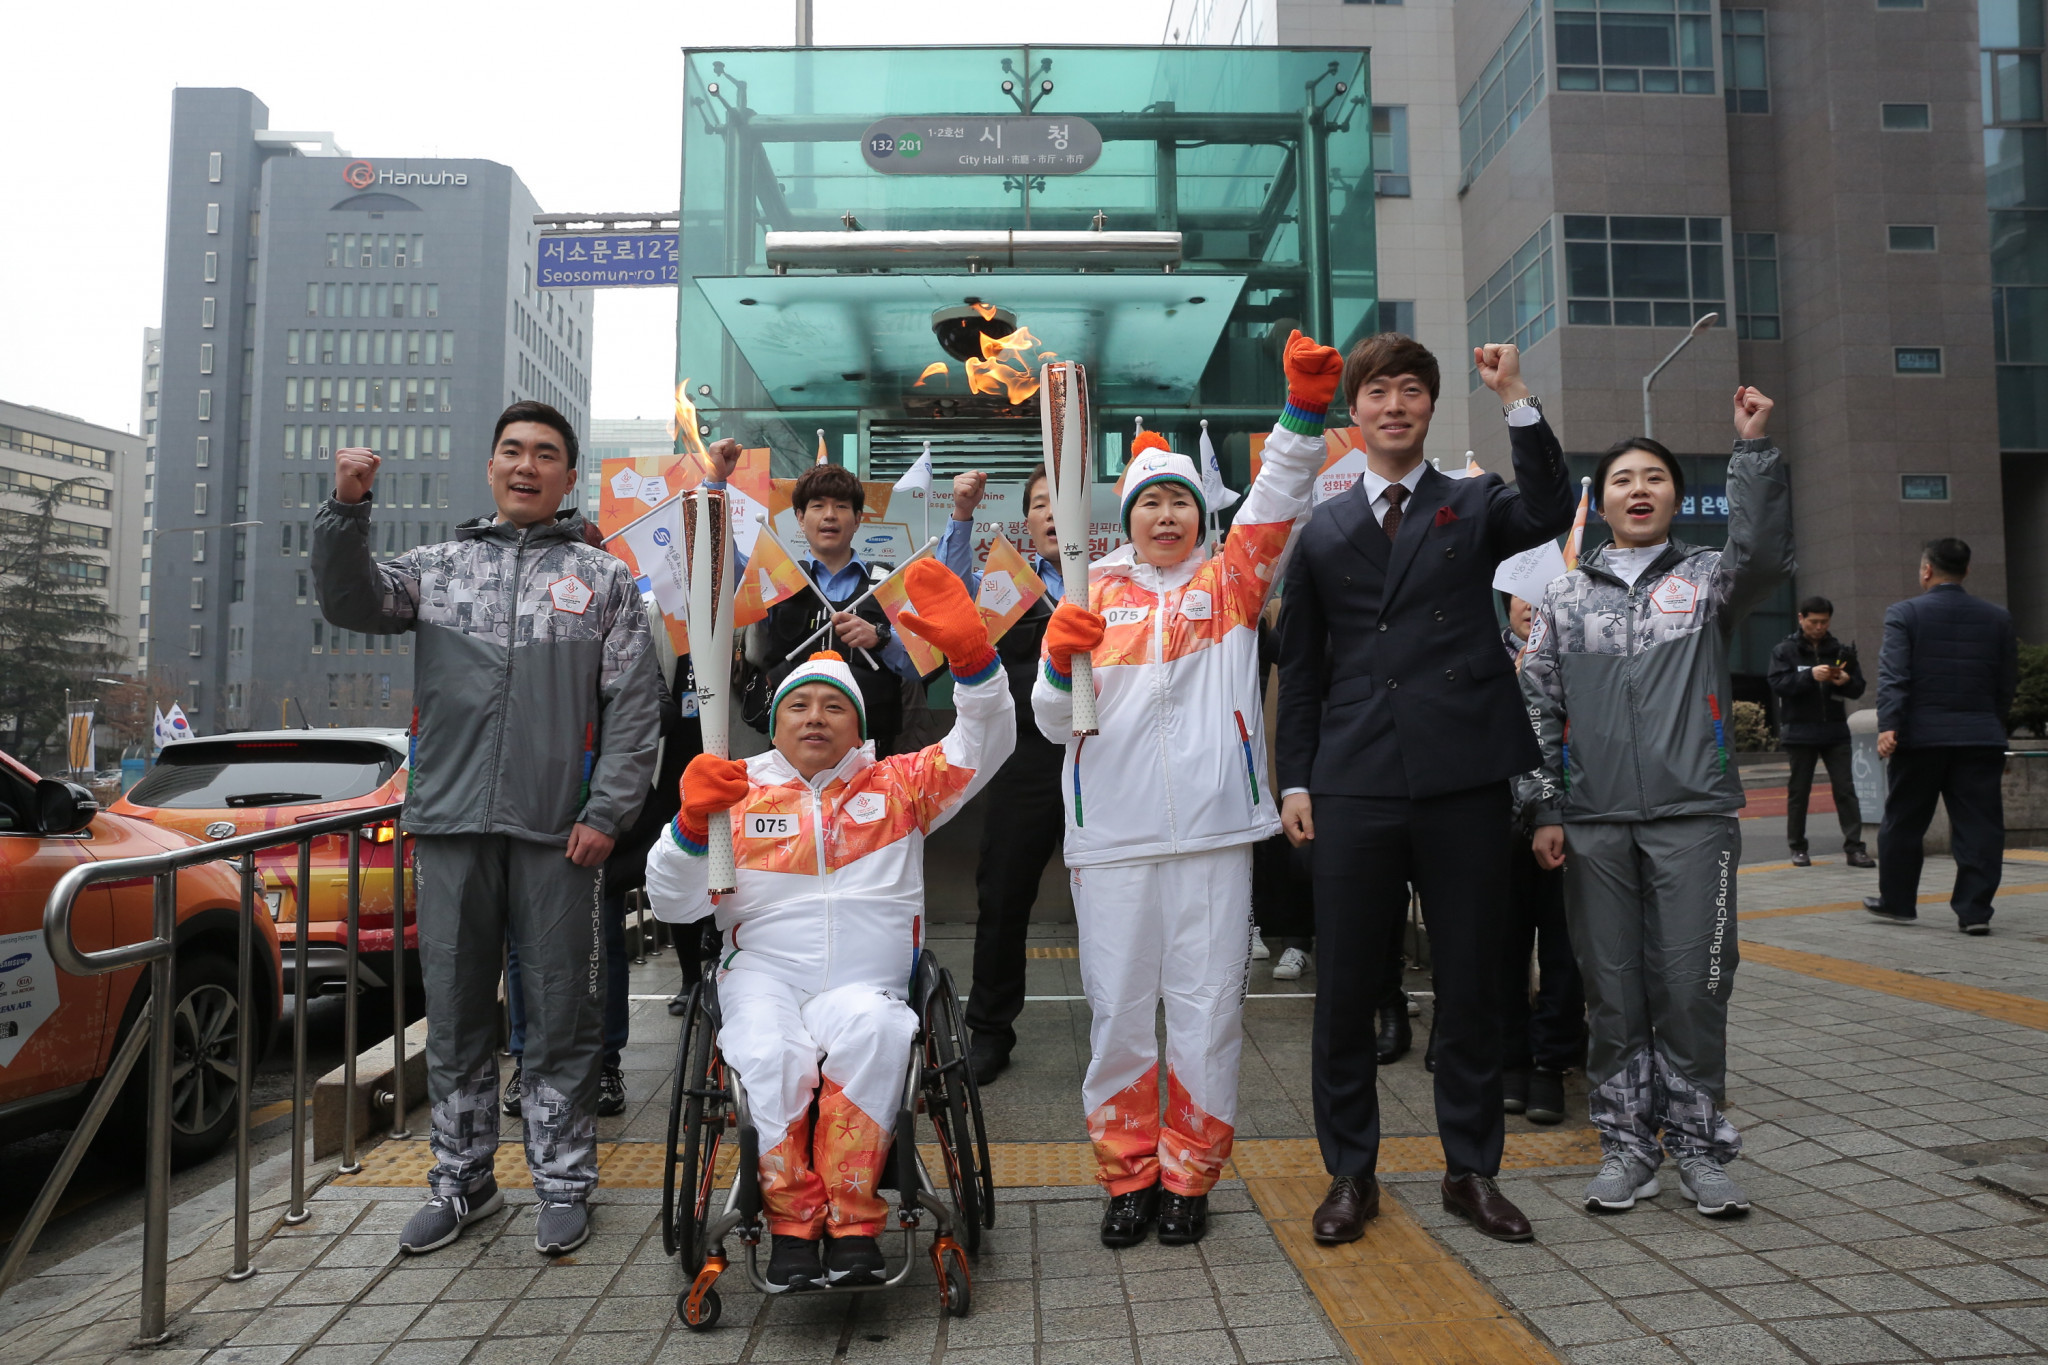 The Paralympic flame is currently making its way to Pyeongchang ©Pyeongchang 2018